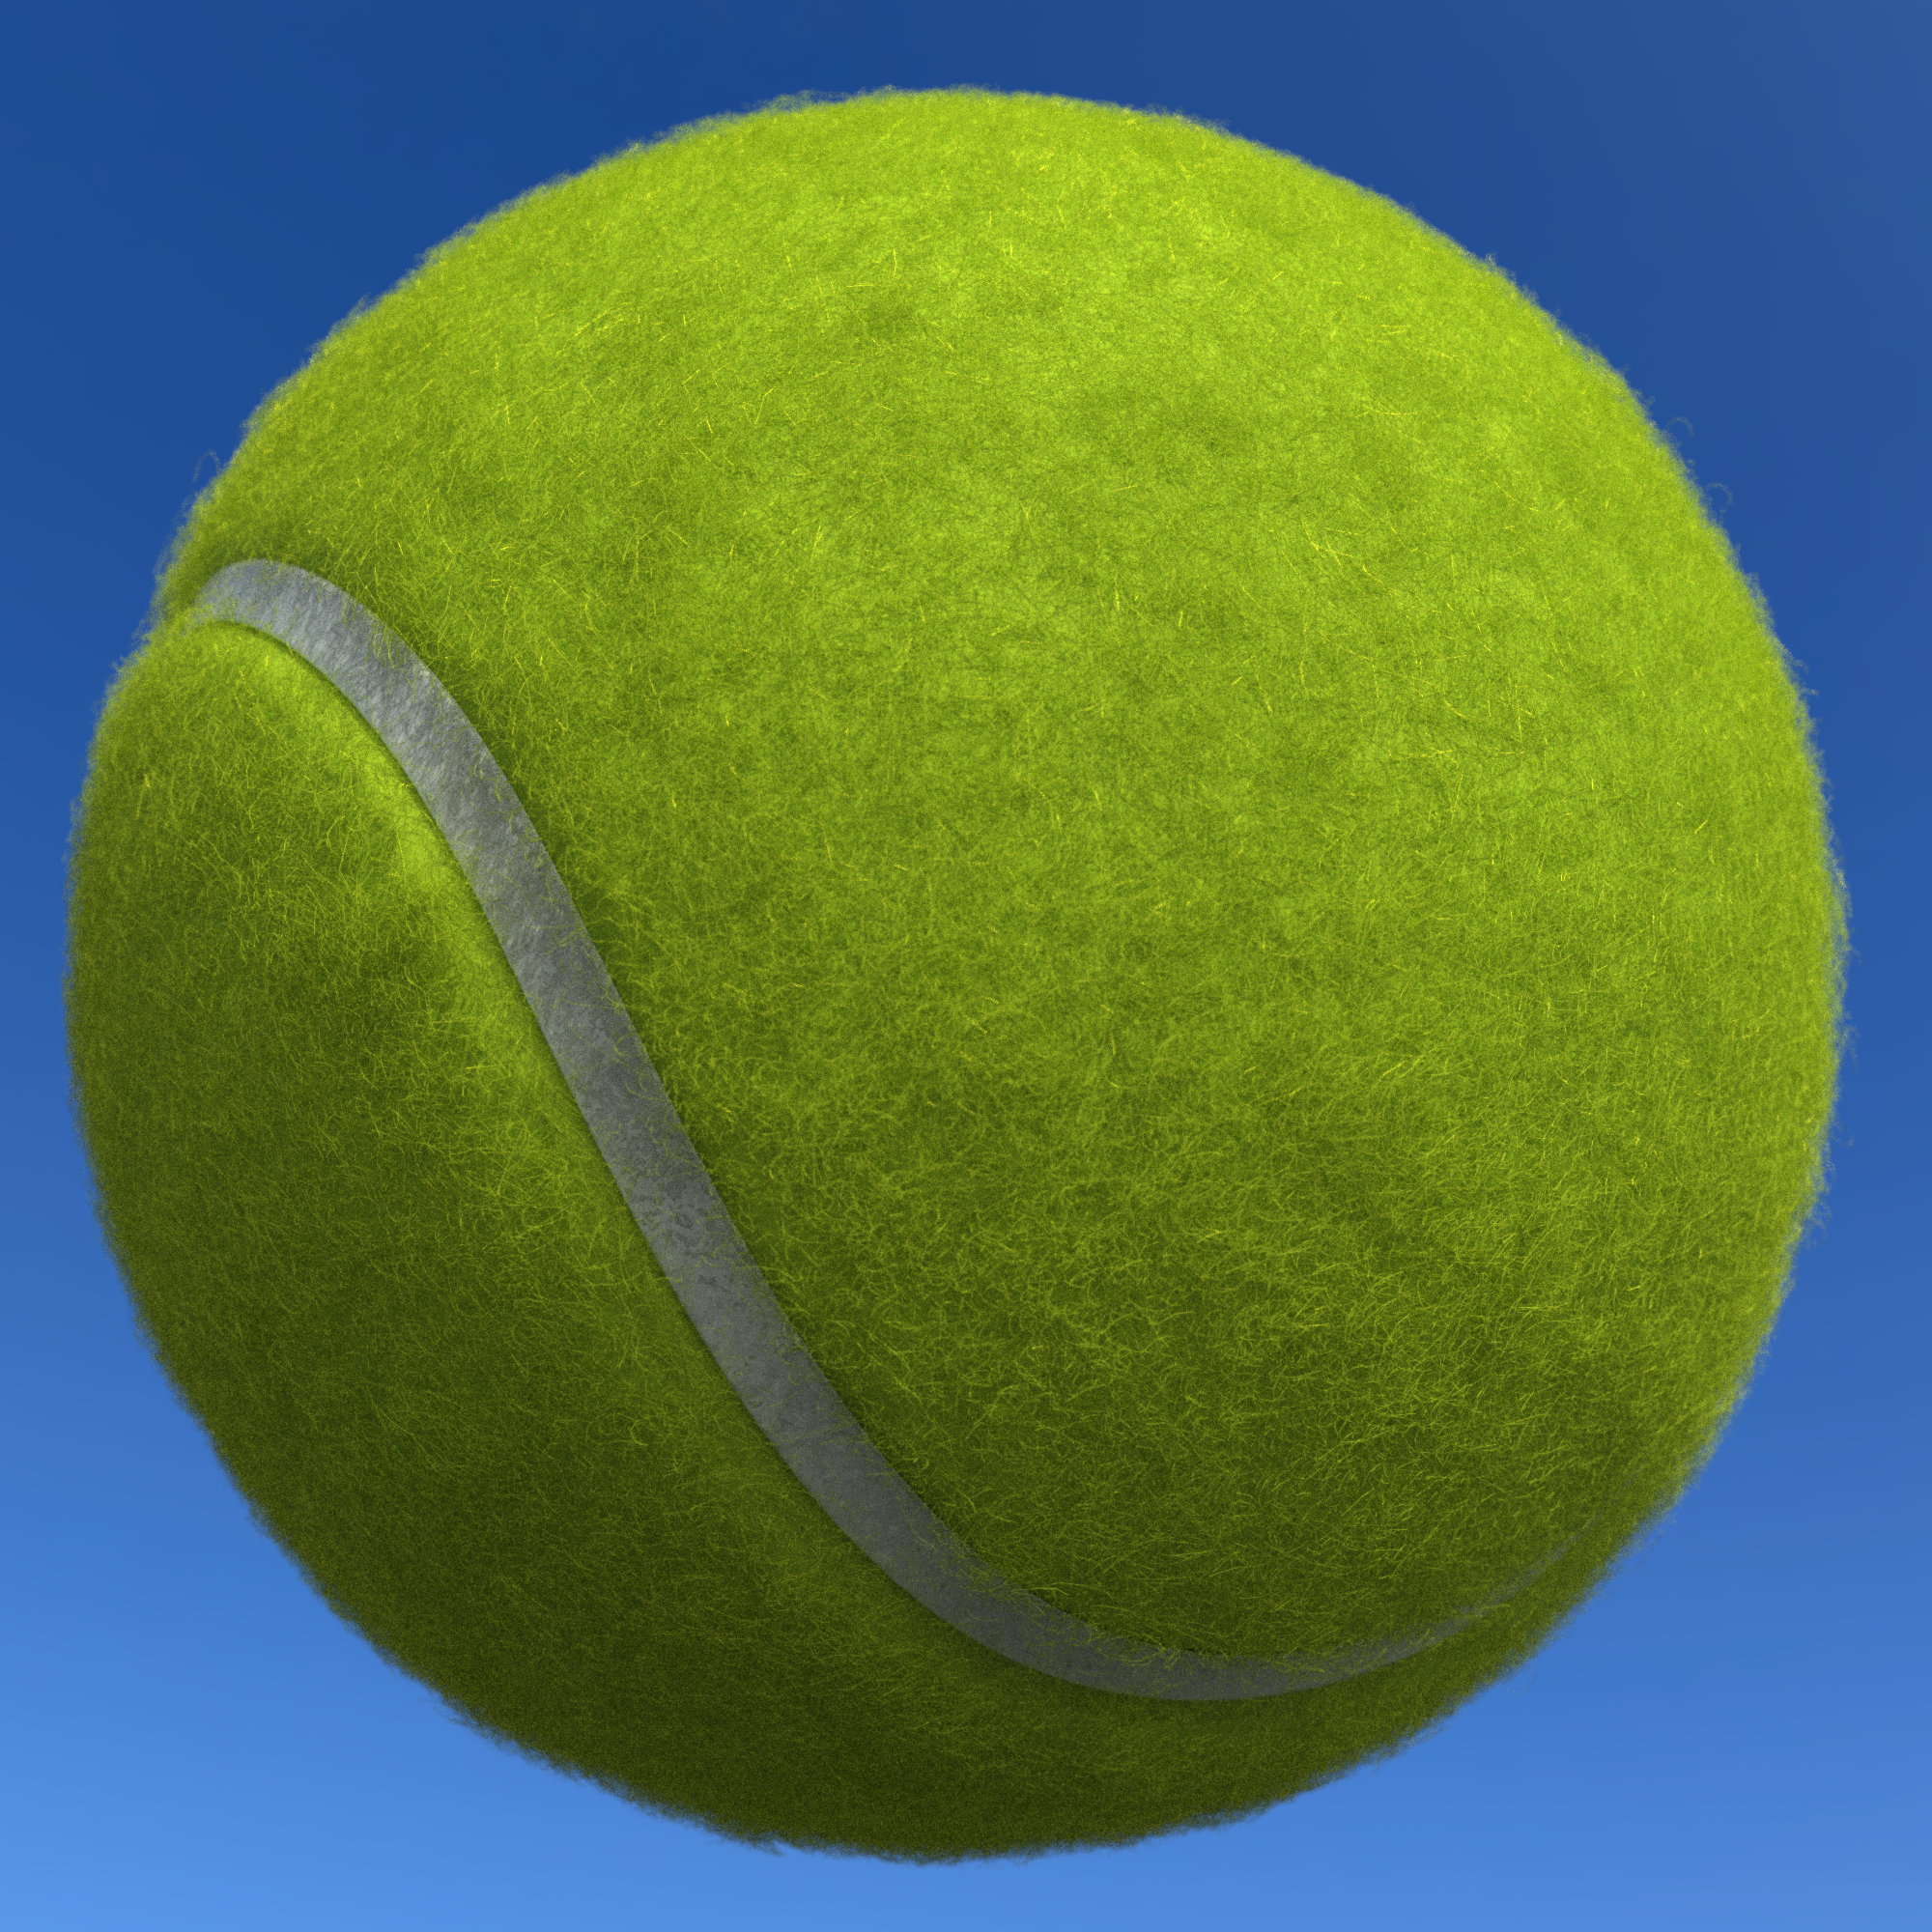 027_TennisBall_02_DM.png